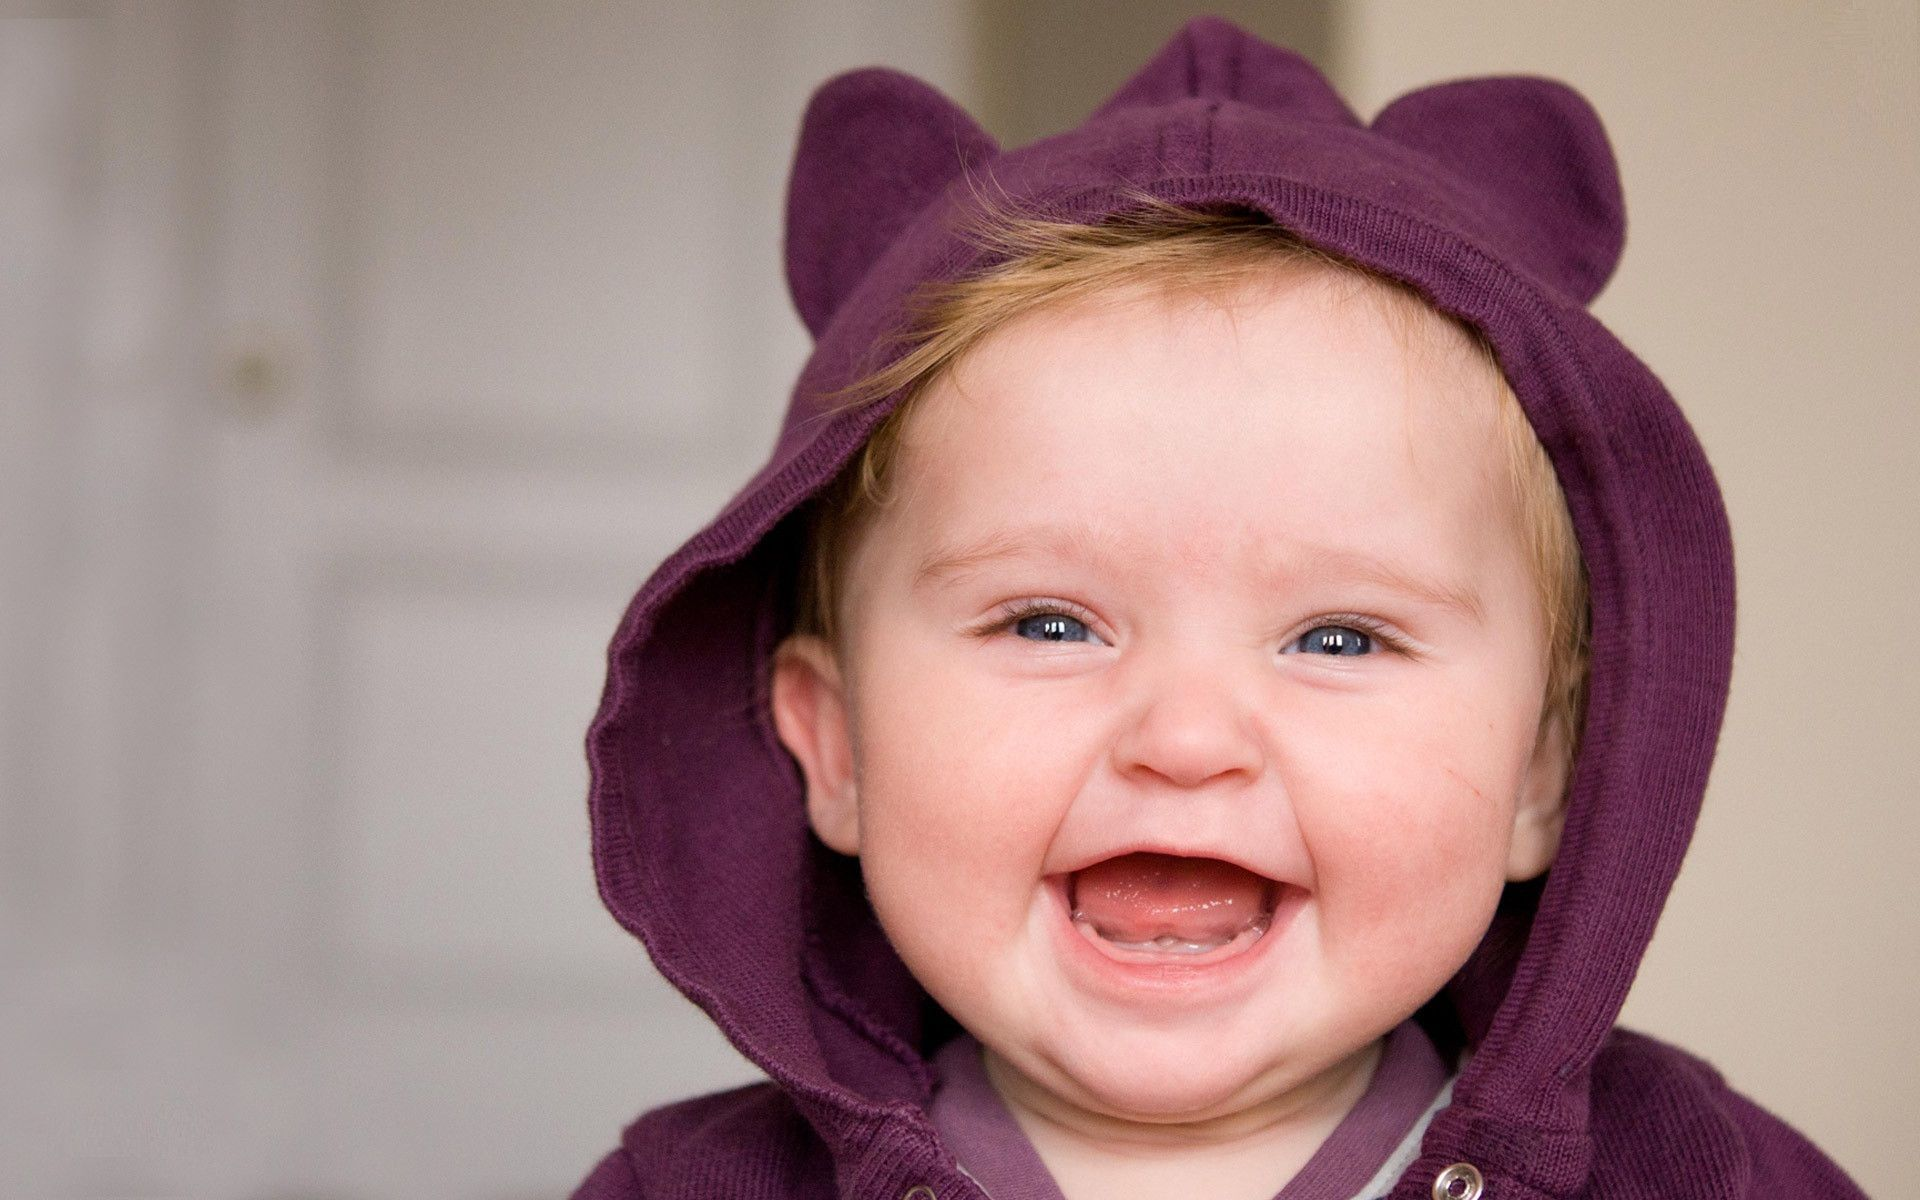 Cute Baby Boy Mobile Wallpapers Hd Wallpapers 1920 1200 Cute Baby Boy Pics Wallpapers 46 Wallpap Baby Boy Pictures Cute Baby Boy Pictures Cute Baby Wallpaper